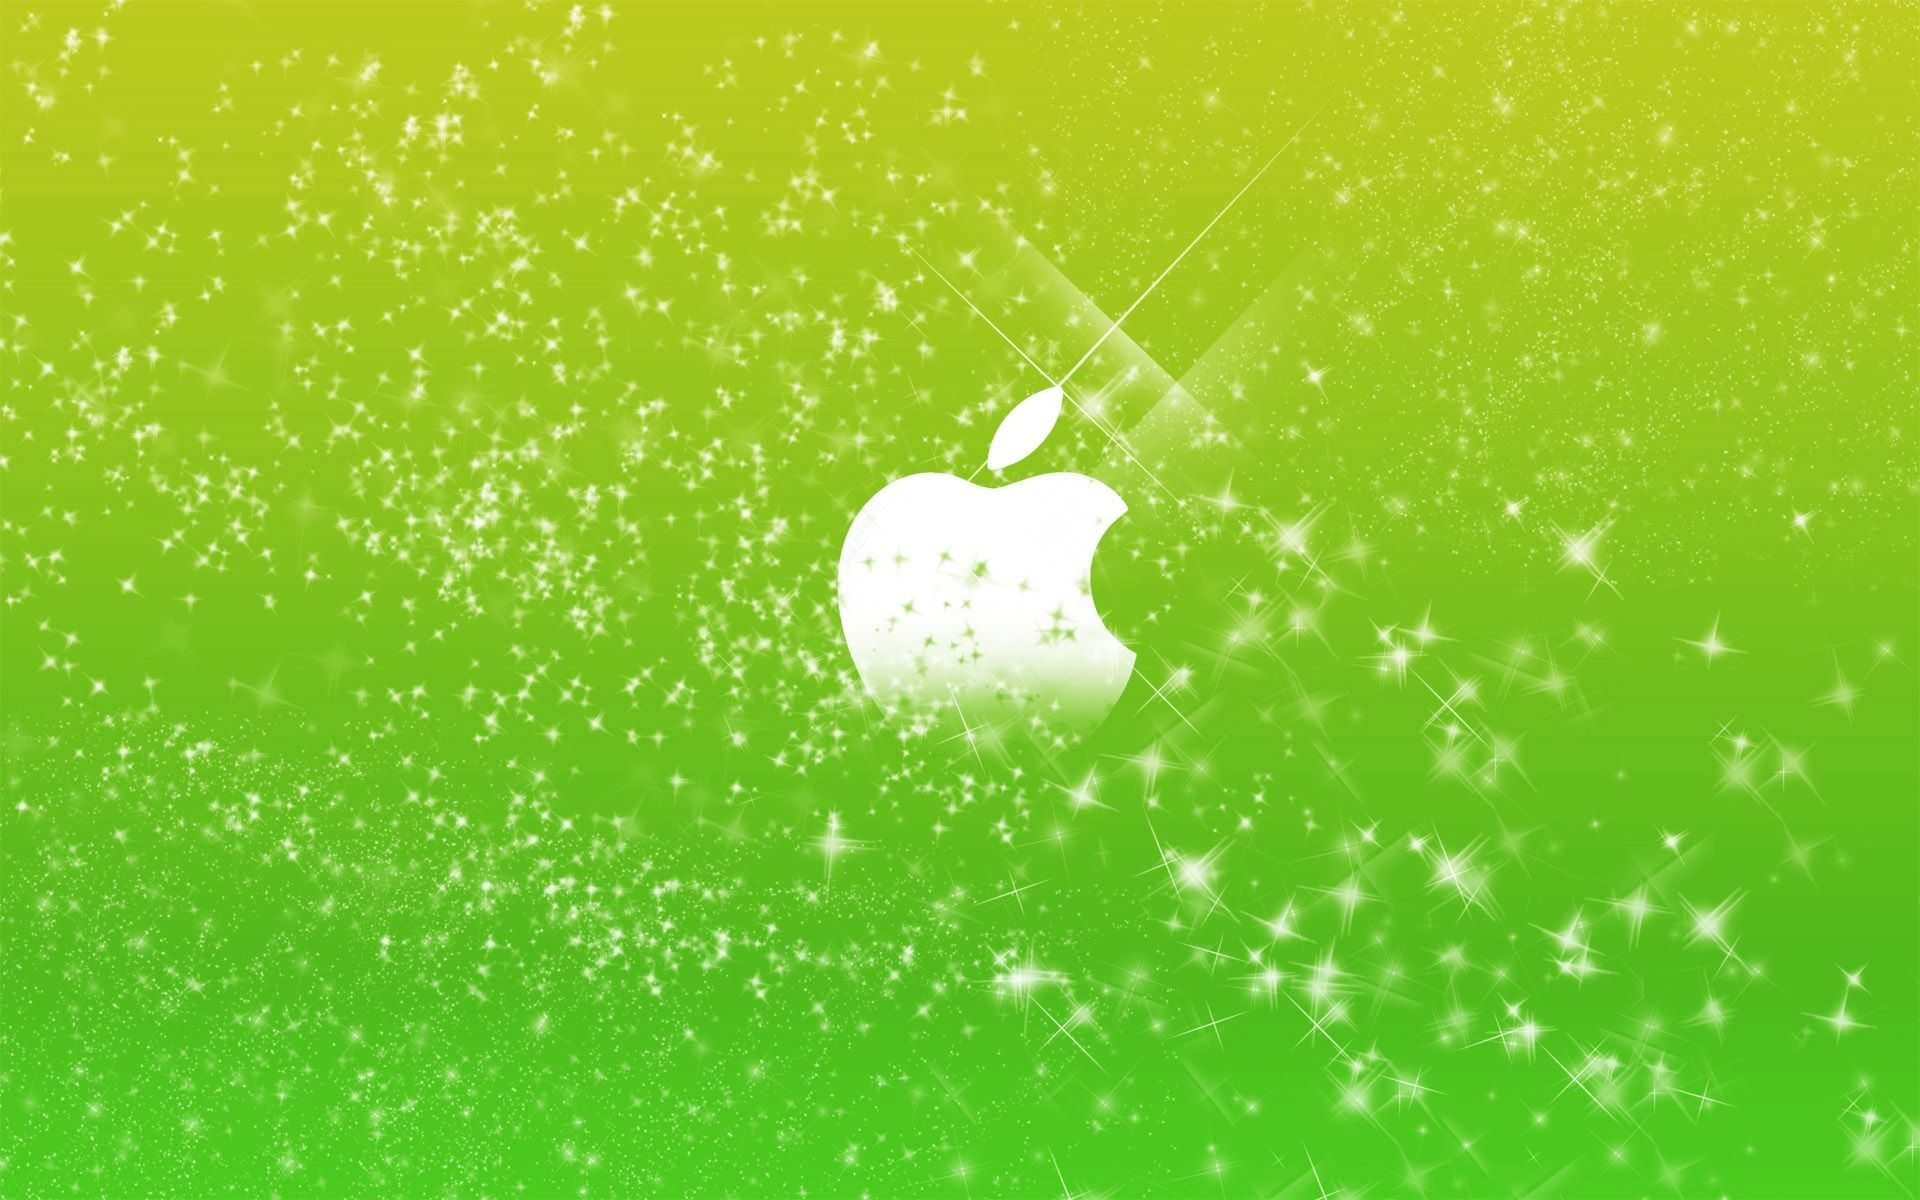 Green Glitter iPhone Background Wallpaper